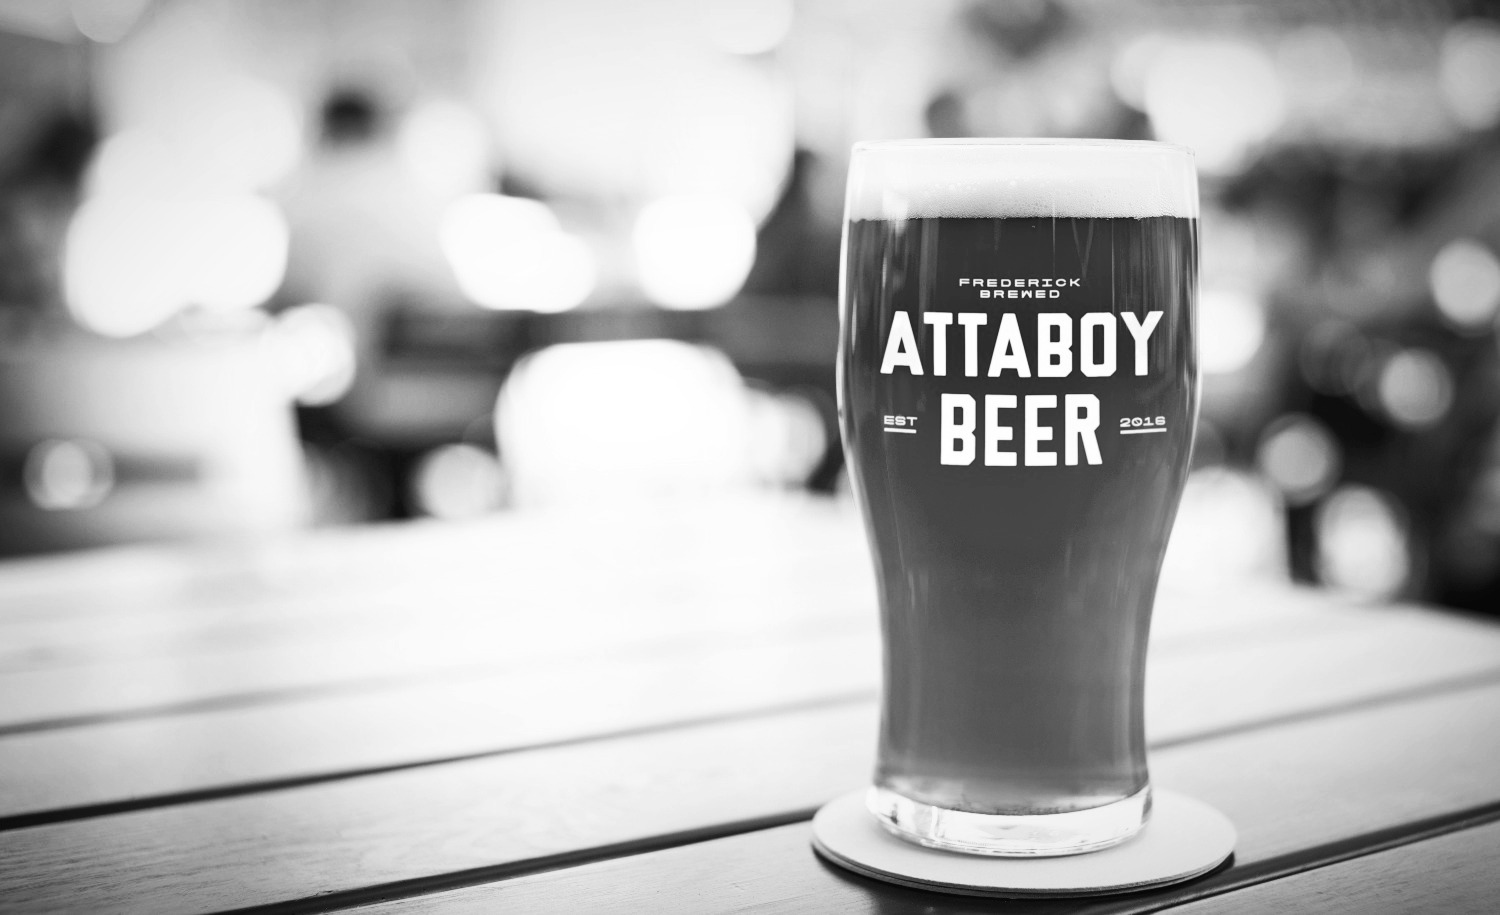 Attaboy Beer About Us